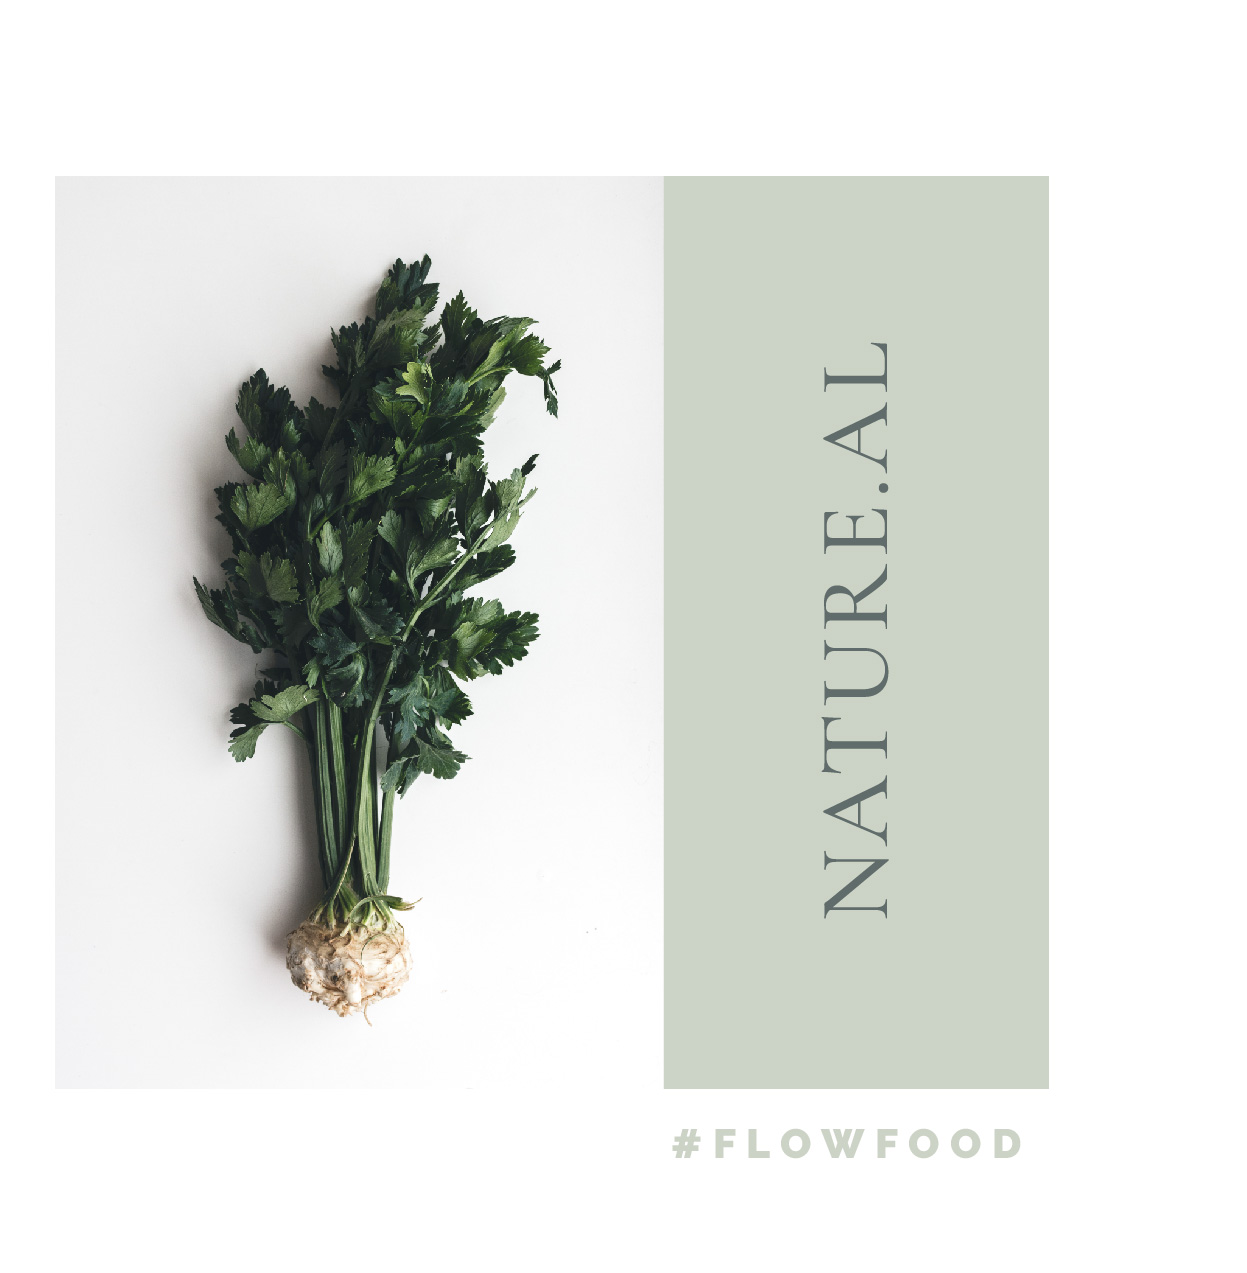 focusflowfood_natureal_food_organic